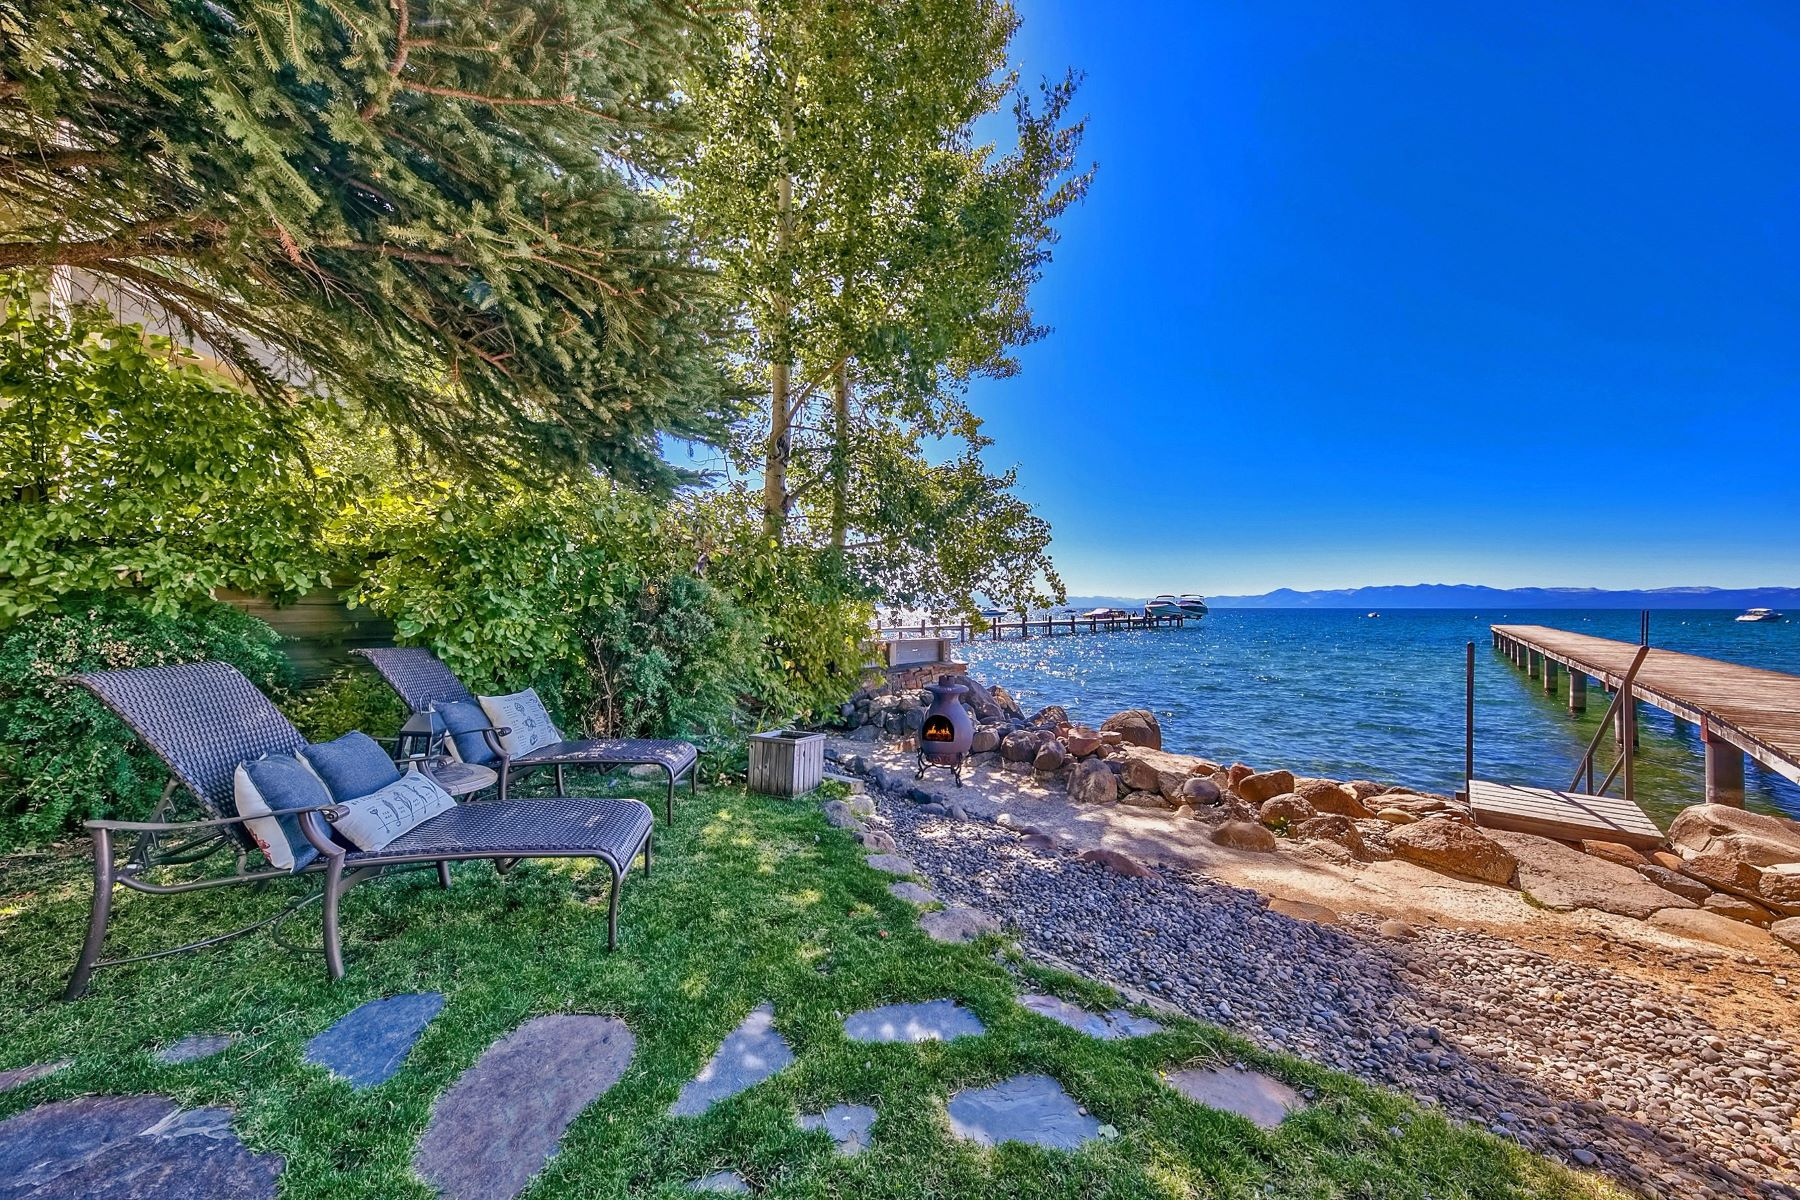 Additional photo for property listing at Lakefront Gem on Brockway Vista Avenue 8730 Brockway Vista Ave Kings Beach, ?????? 96143 ??